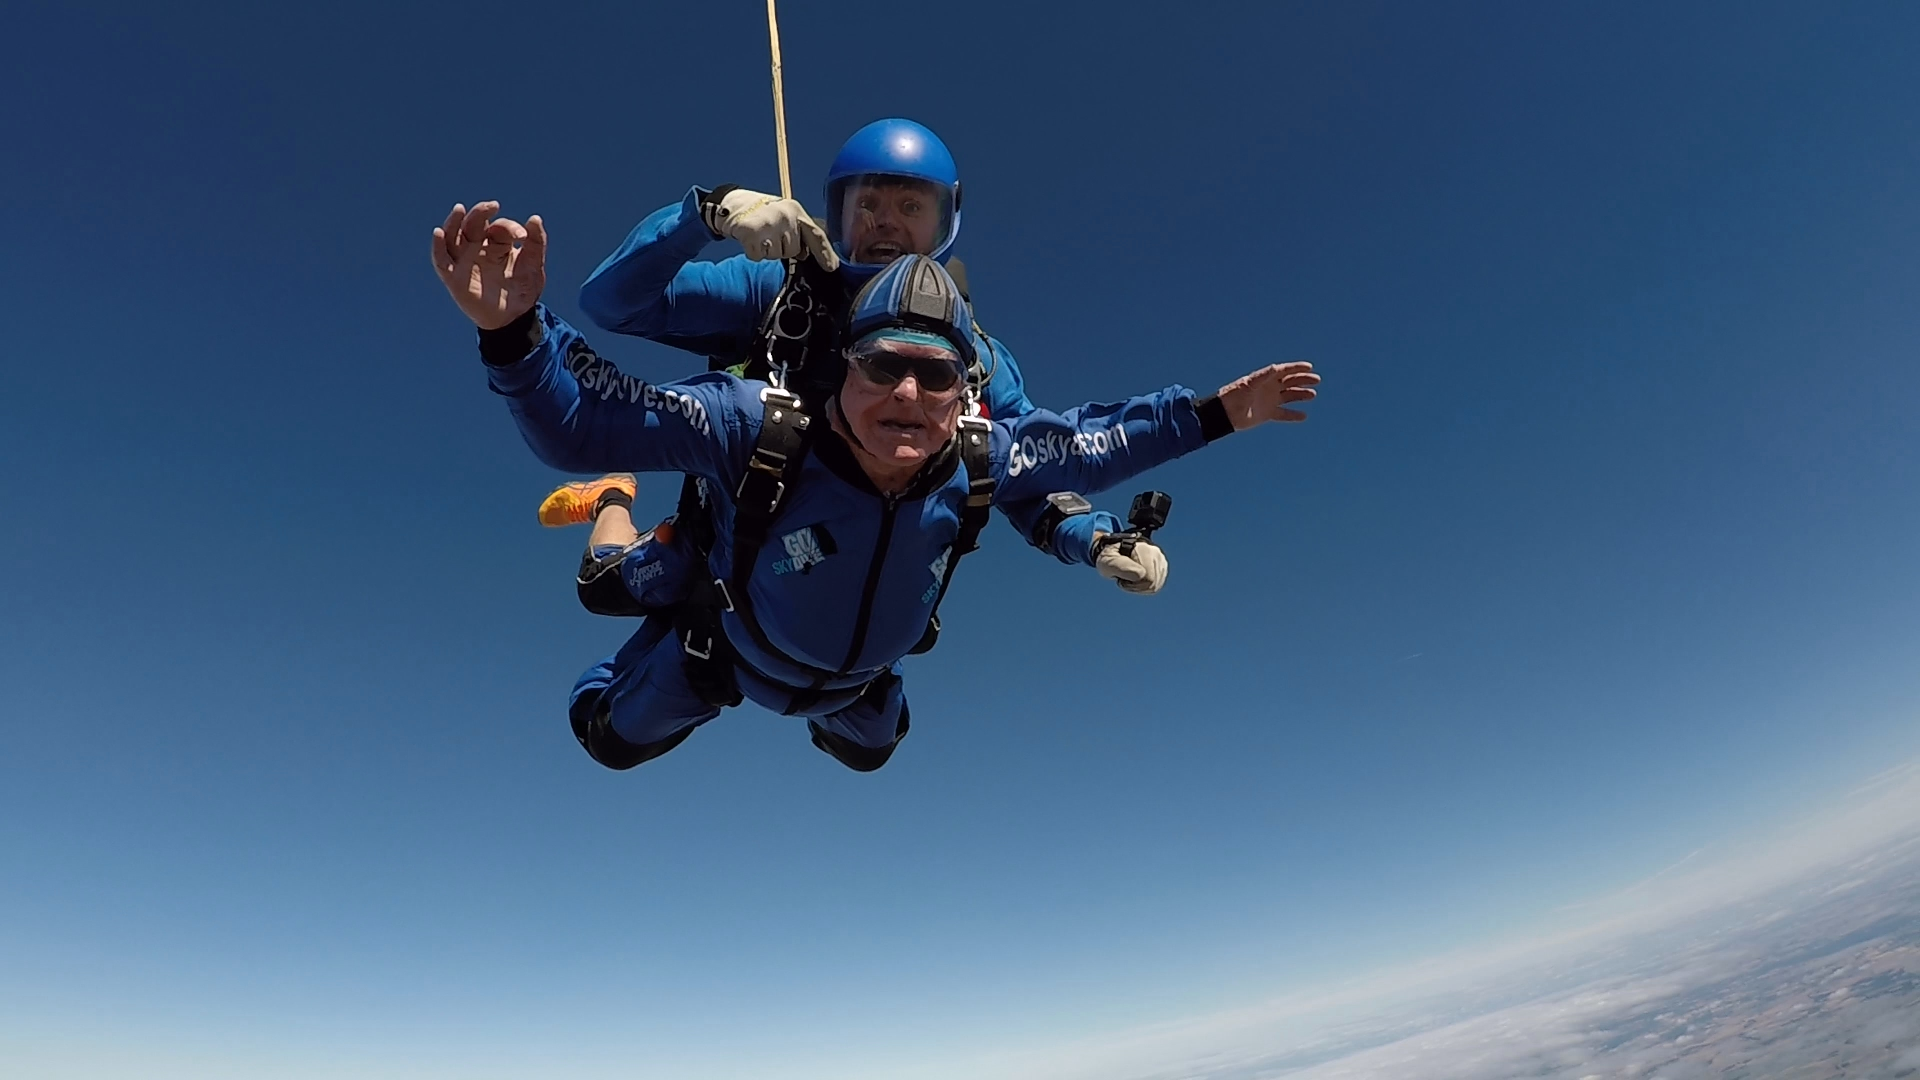 Weight limit for skydiving - GoSkydive